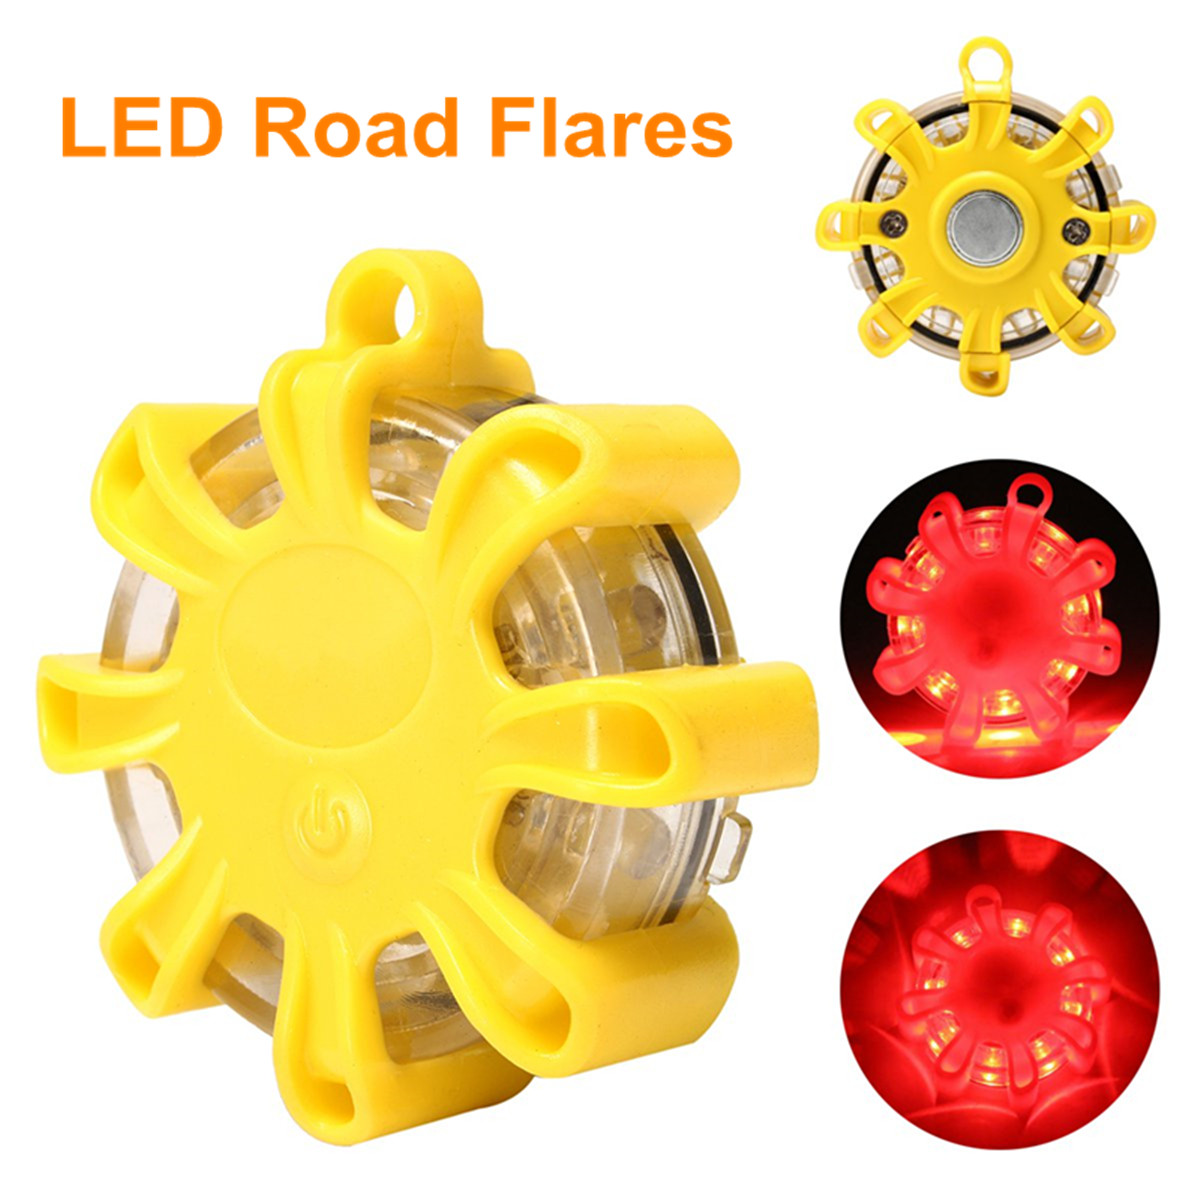 Multifunctional Portable LED Road Flare Safety Lights Emergency Beacon Magnetic Roadside Flashing Light Warning Road Rescue Lamp